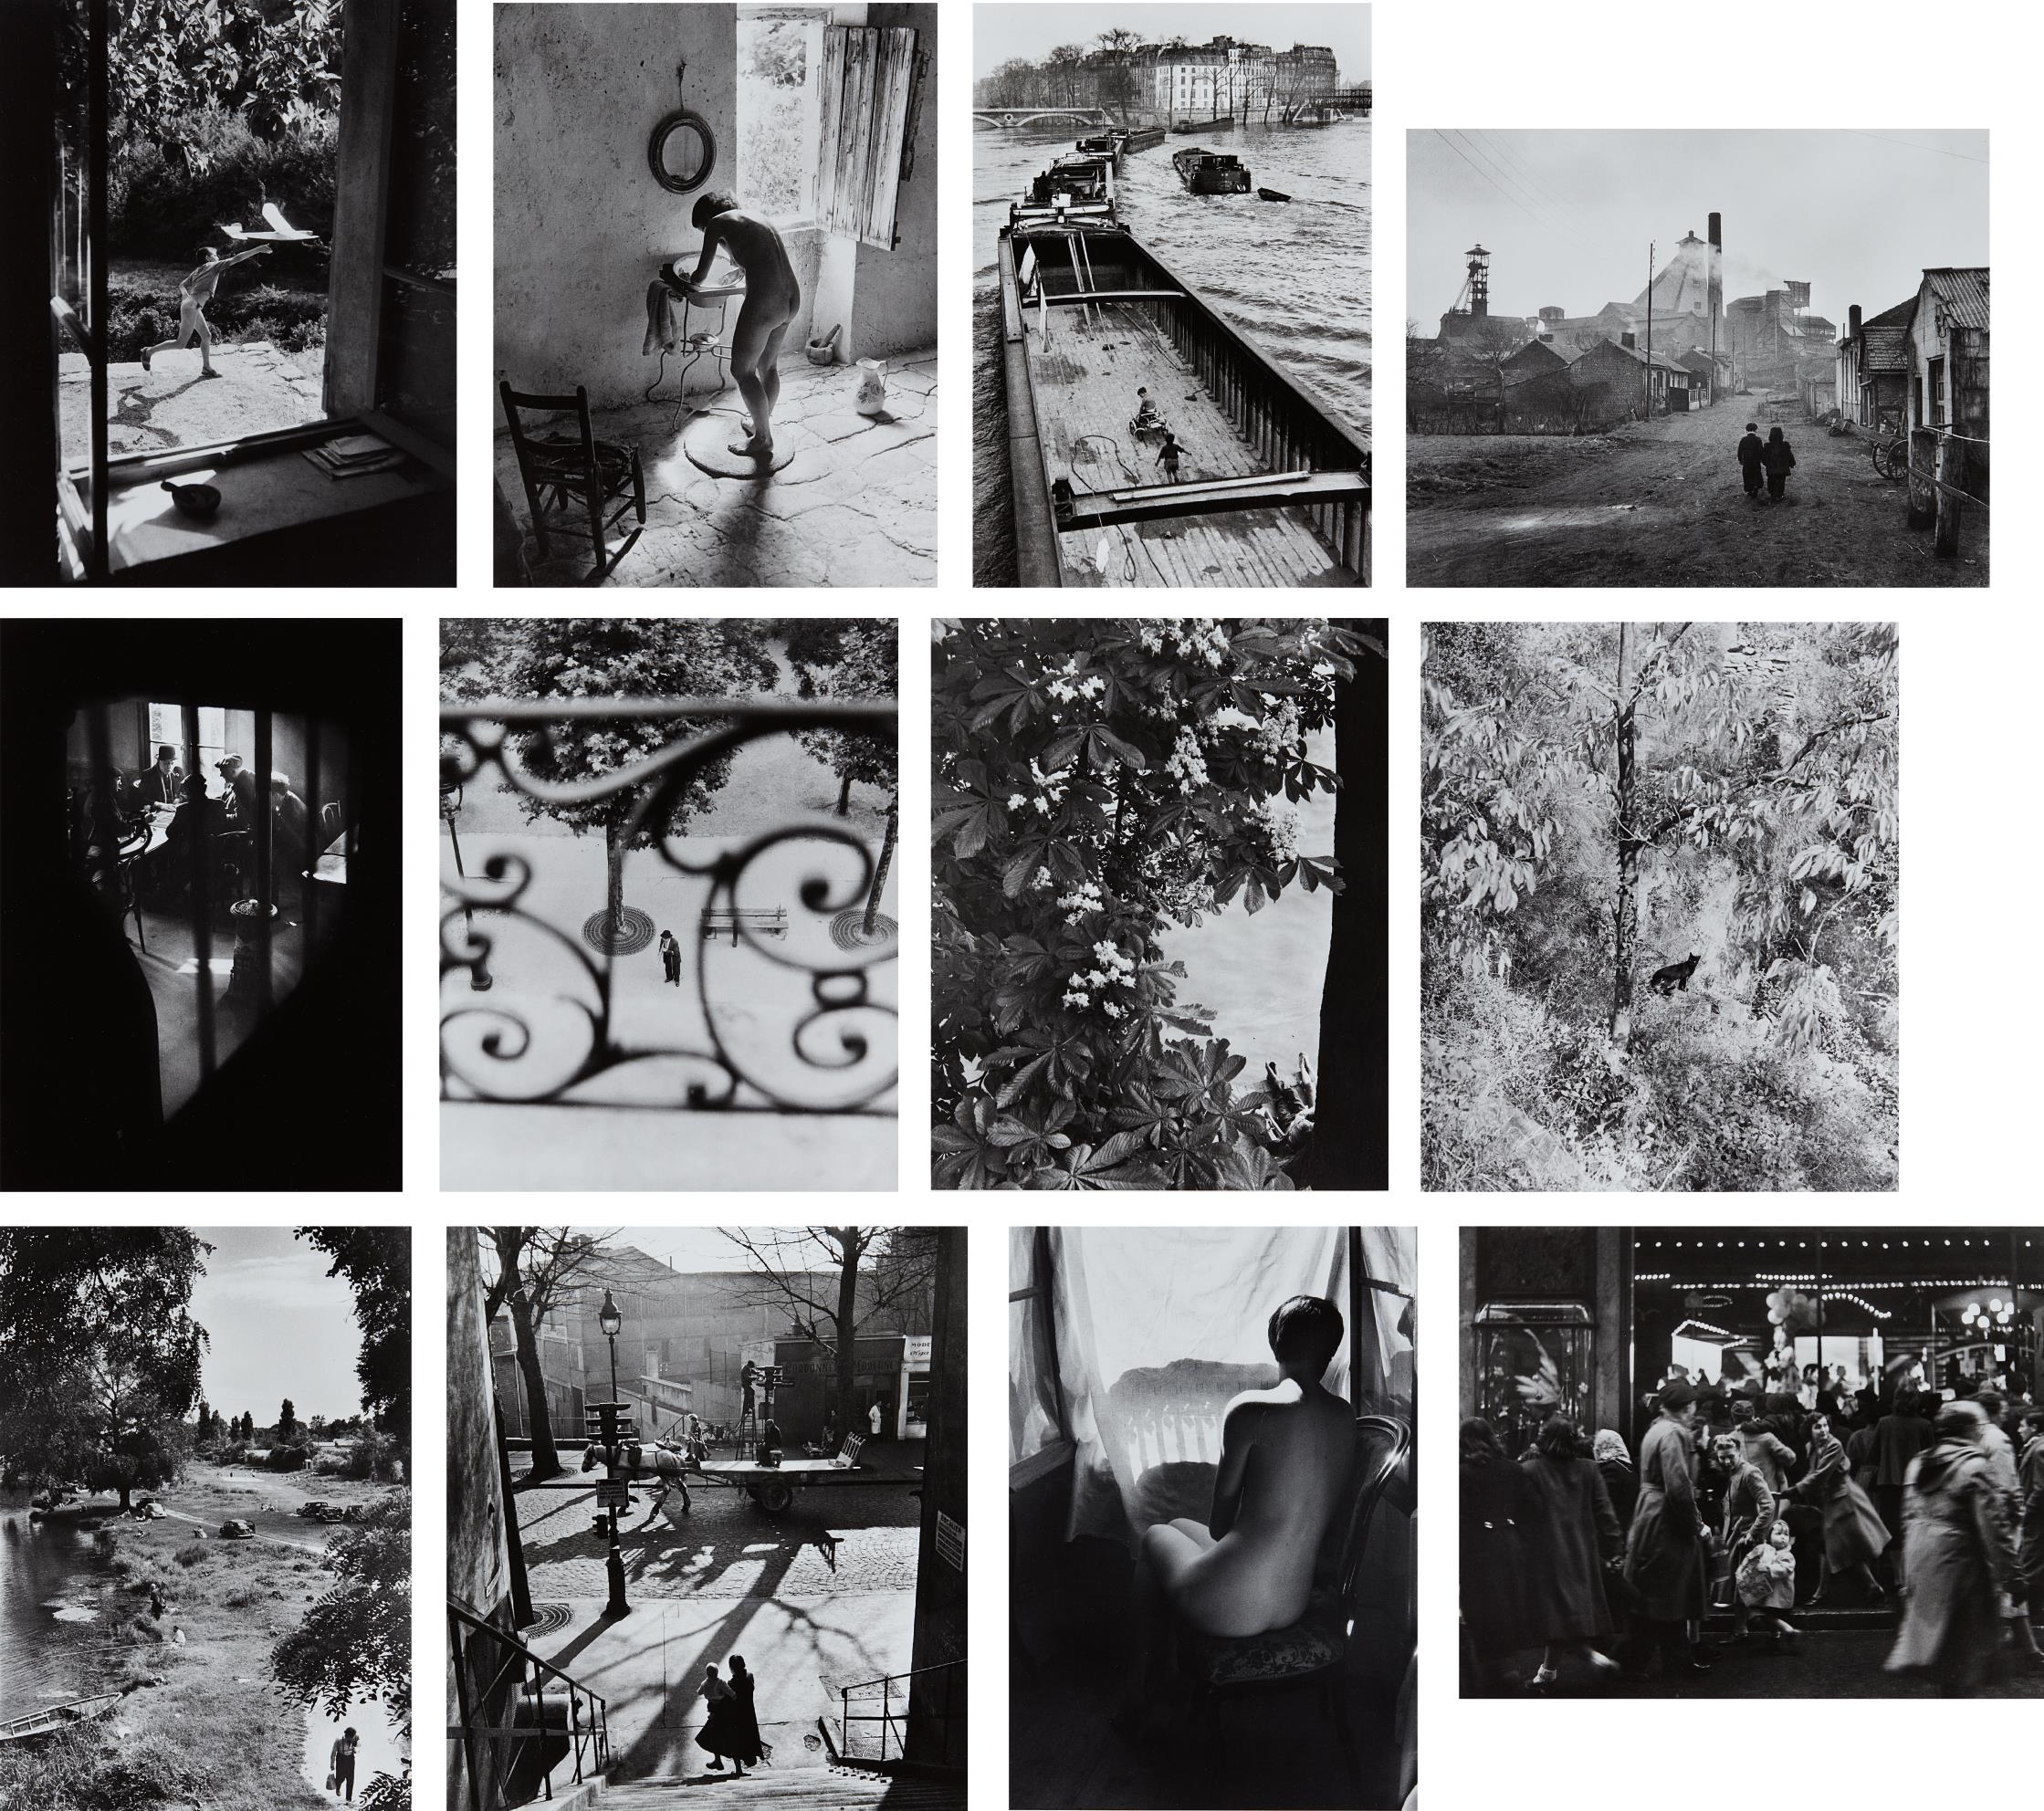 Willy Ronis-Willy Ronis-1985